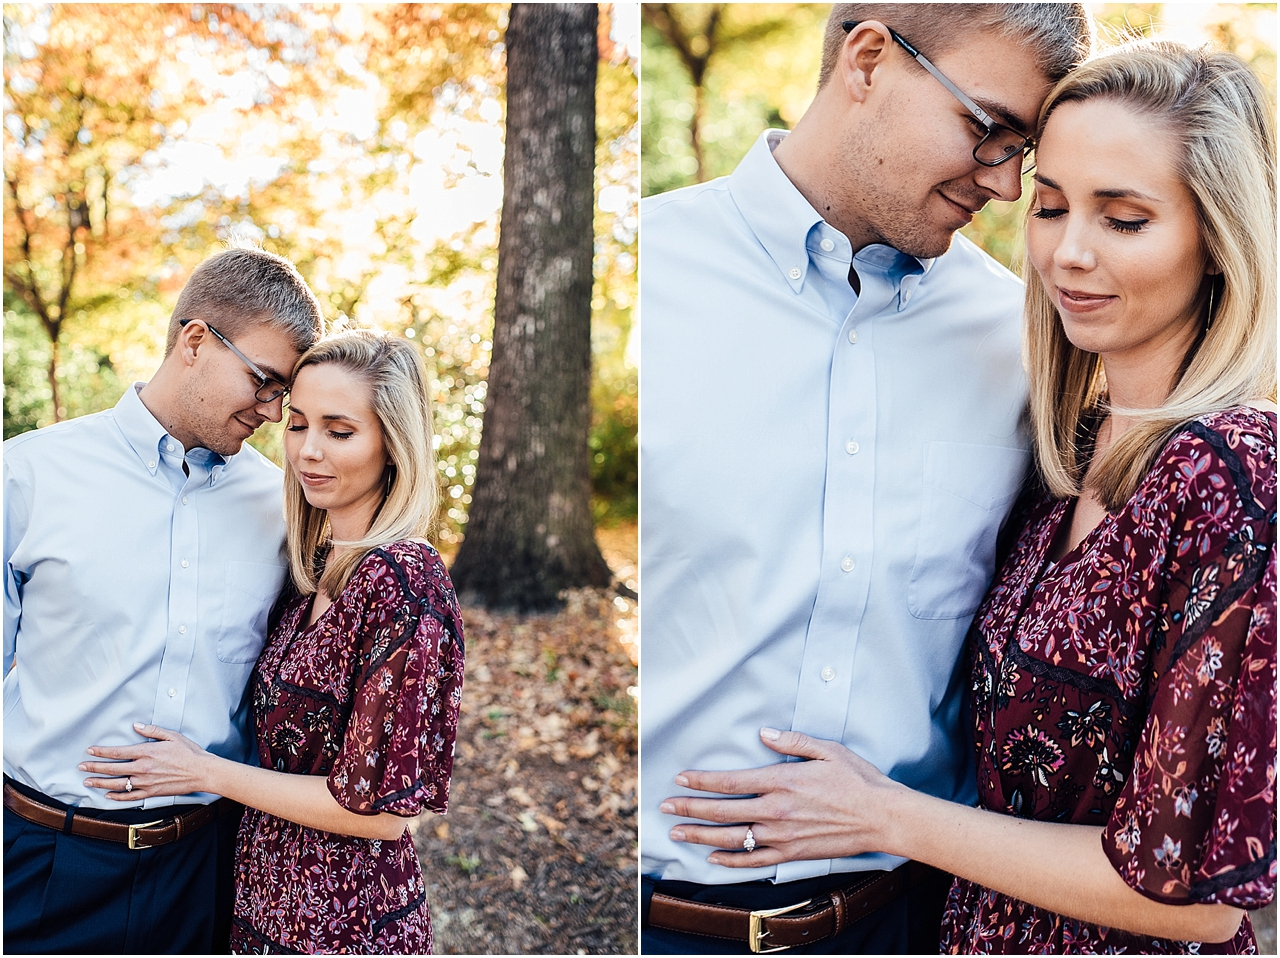 Lindsey Ann Photography -Engagement session at the Botanical Gardens in Downtown Birmingahm